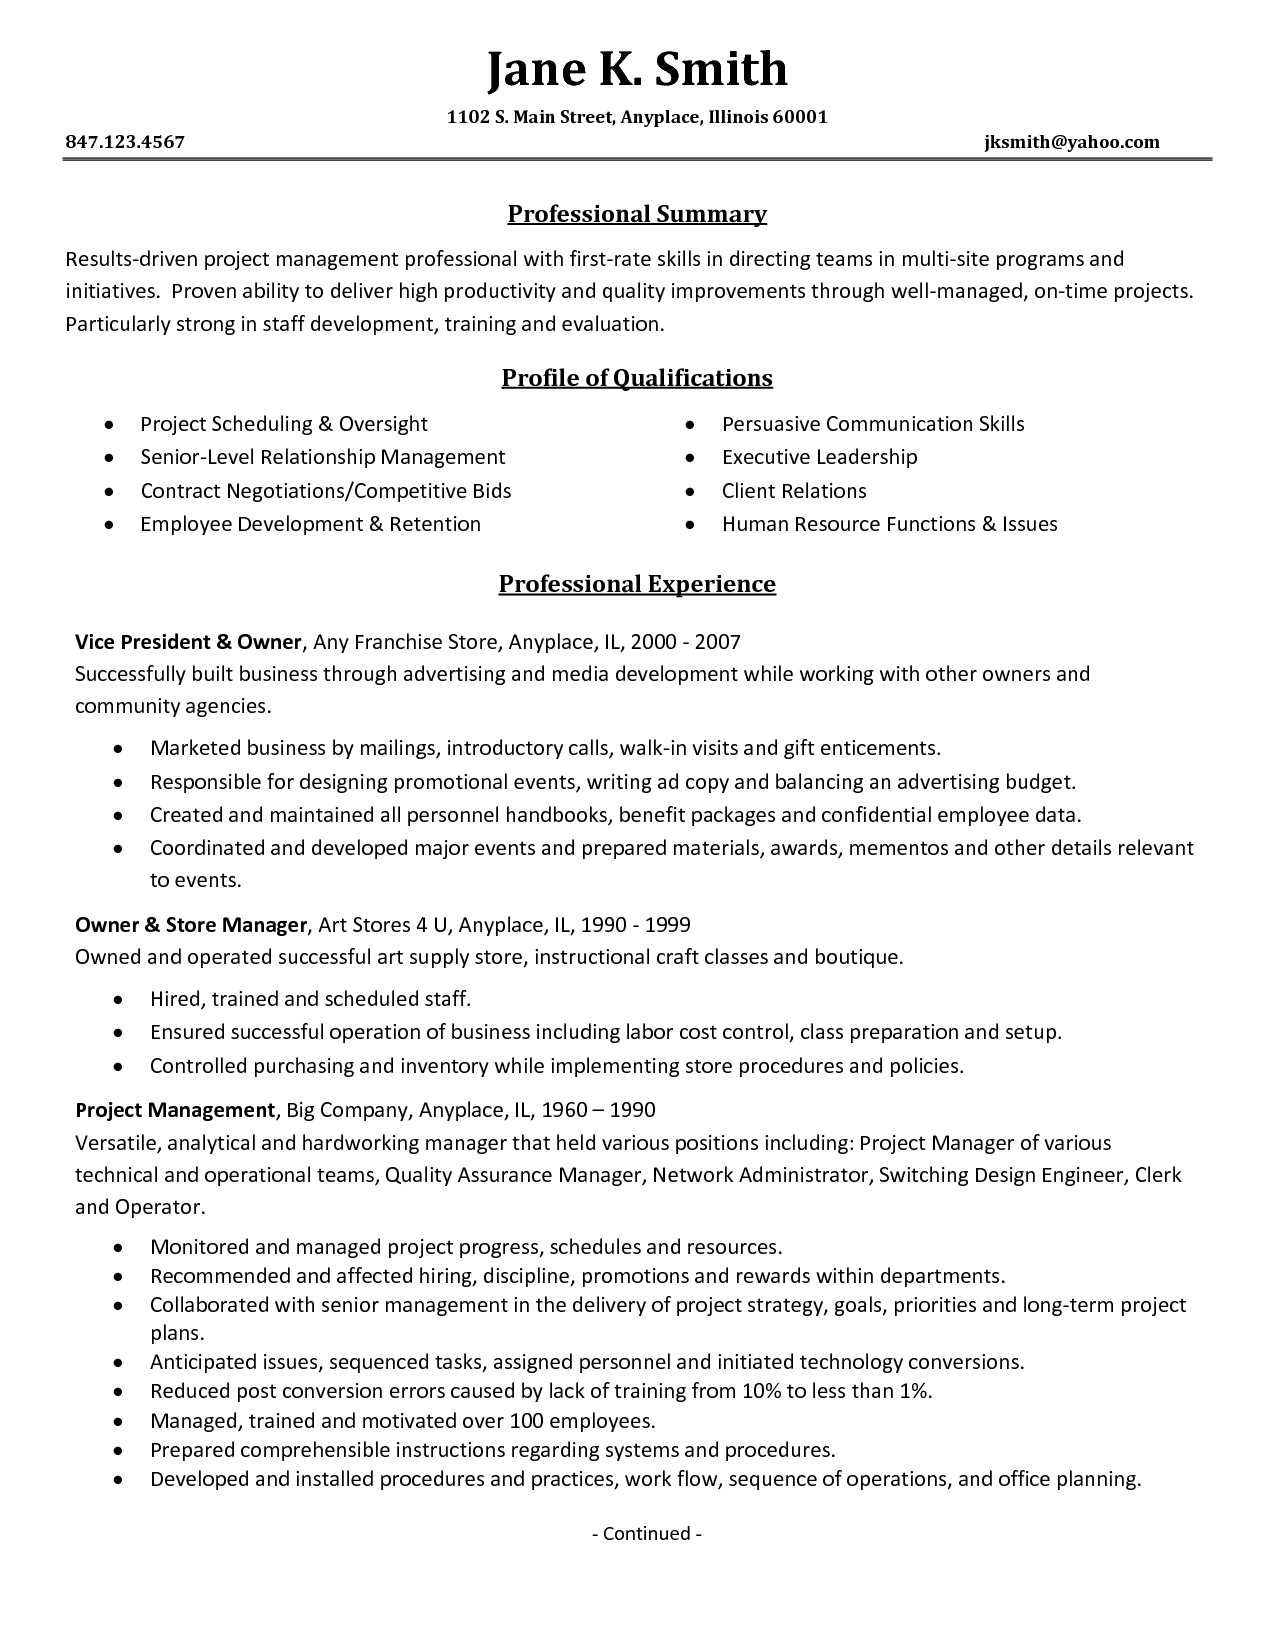 Skills Resume Template Leadership Skills Resume Leadership Skills Resume Template…  Job